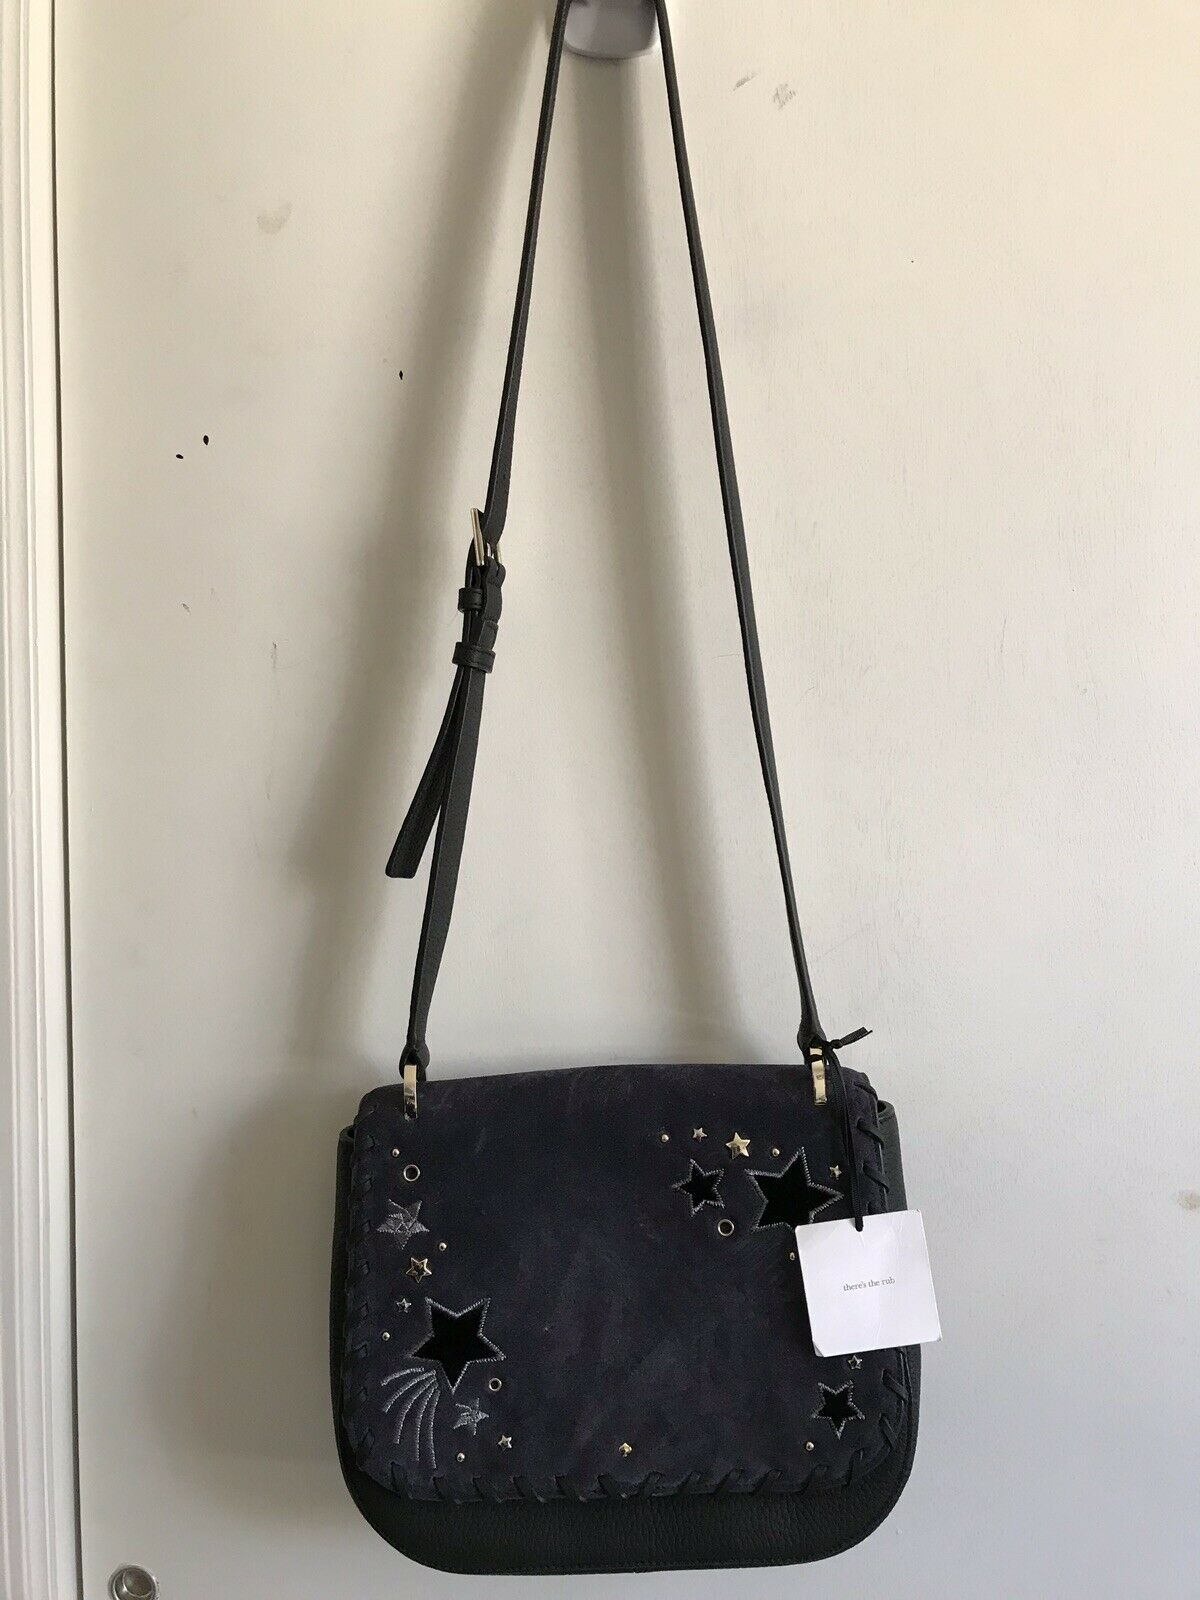 NWT! KATE SPADE Madison Collection Navy Leather Crossbody Msrp $ 550